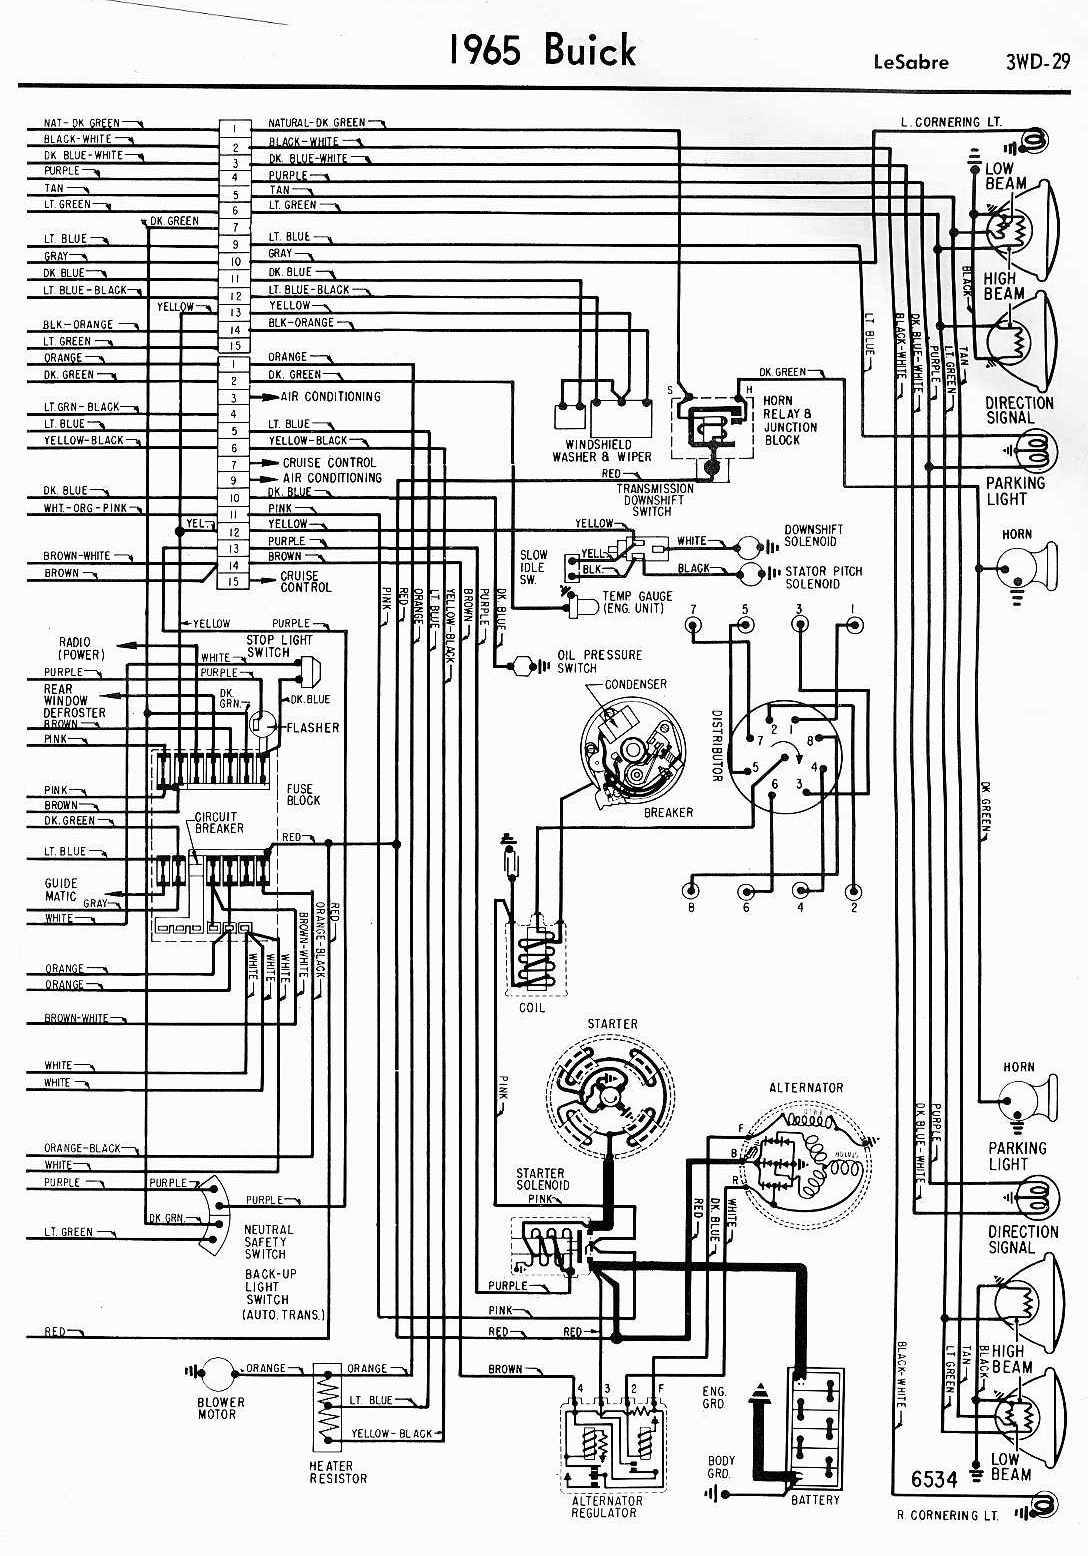 Buick Car Manuals Wiring Diagrams Pdf Fault Codes Of 1960 All Models Diagram For Image 2731 Kb Download